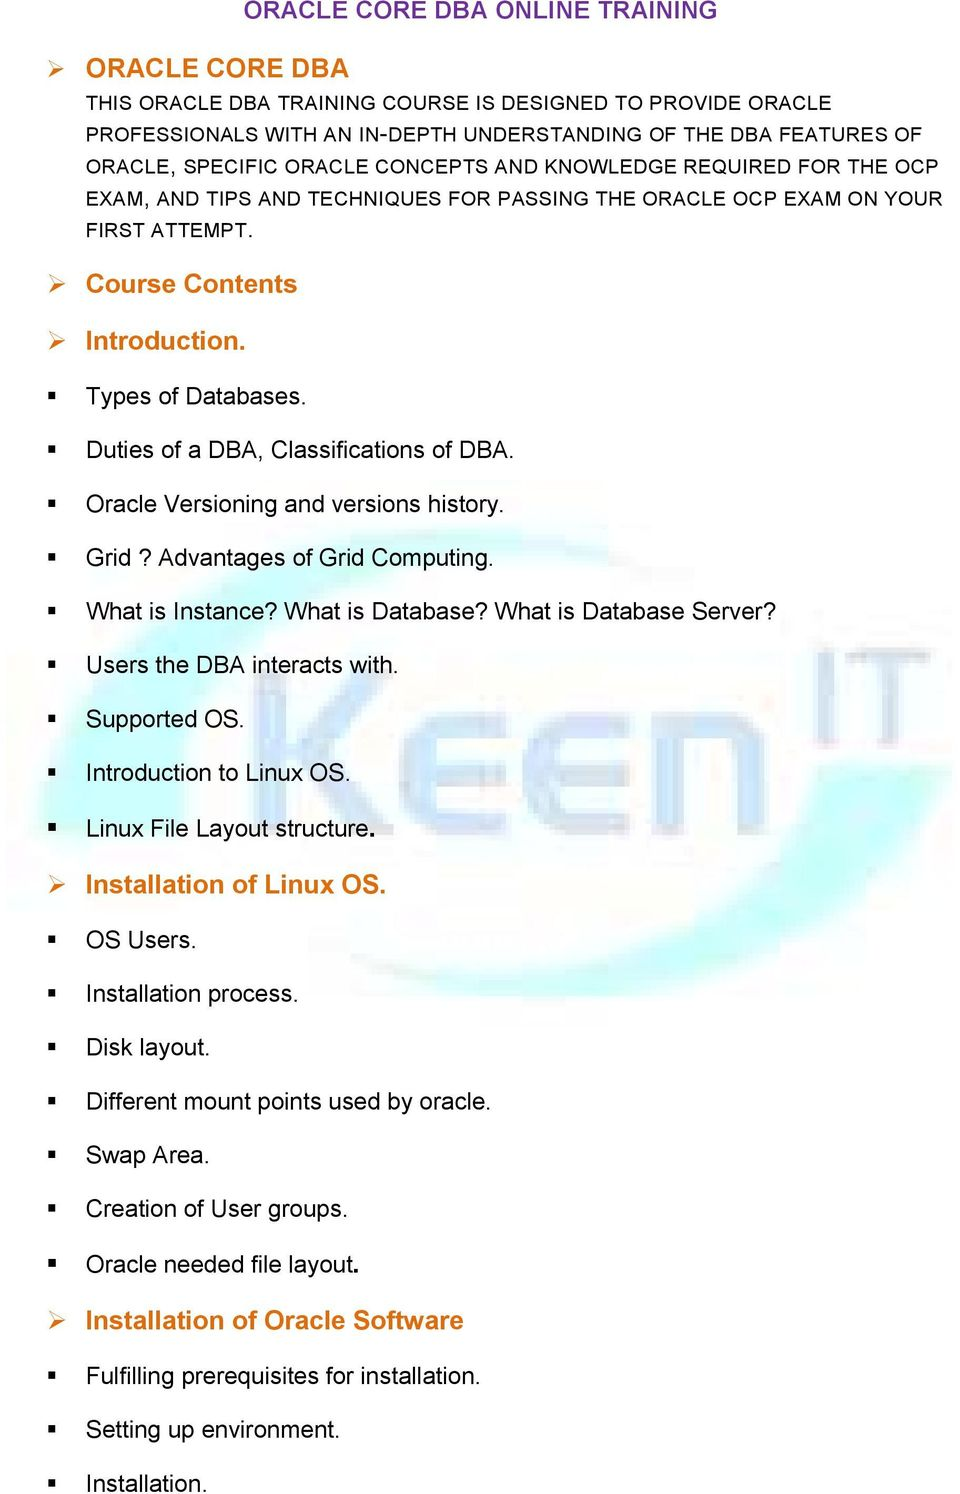 Duties of a DBA, Classifications of DBA. Oracle Versioning and versions history. Grid? Advantages of Grid Computing. What is Instance? What is Database? What is Database Server?